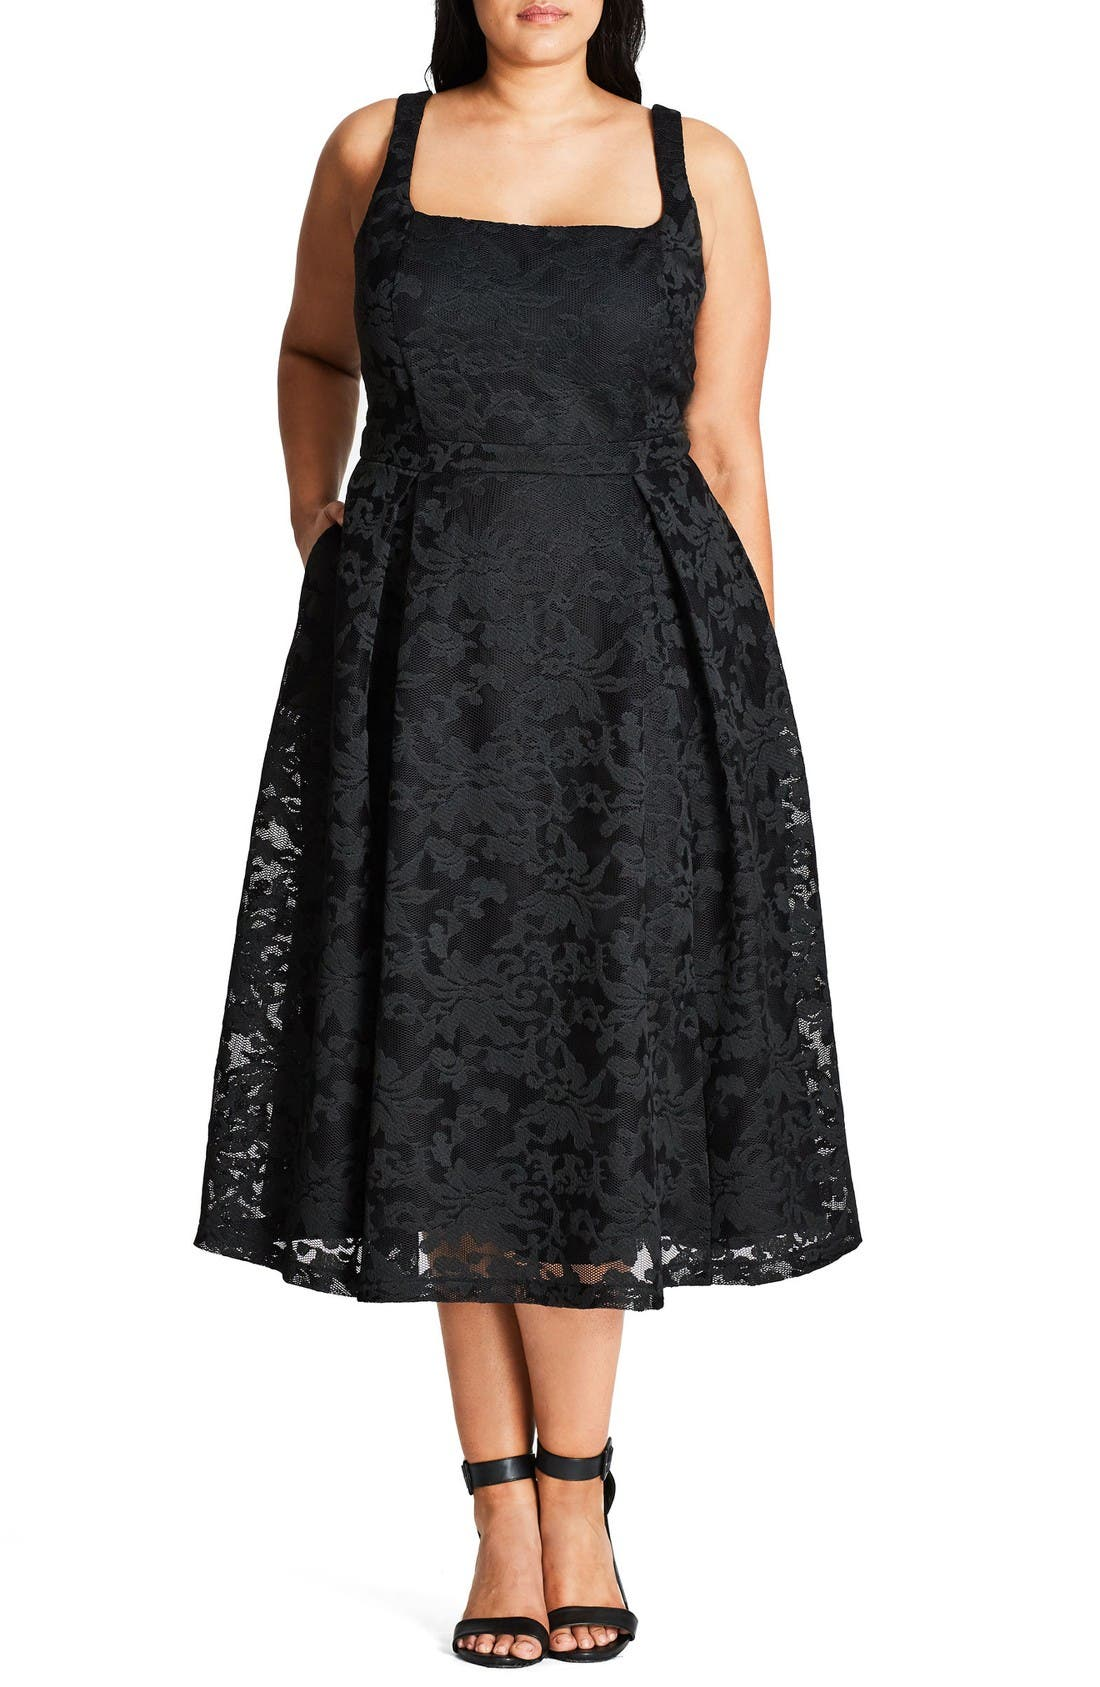 City Chic Jackie O Lace Fit & Flare Dress (Plus Size)